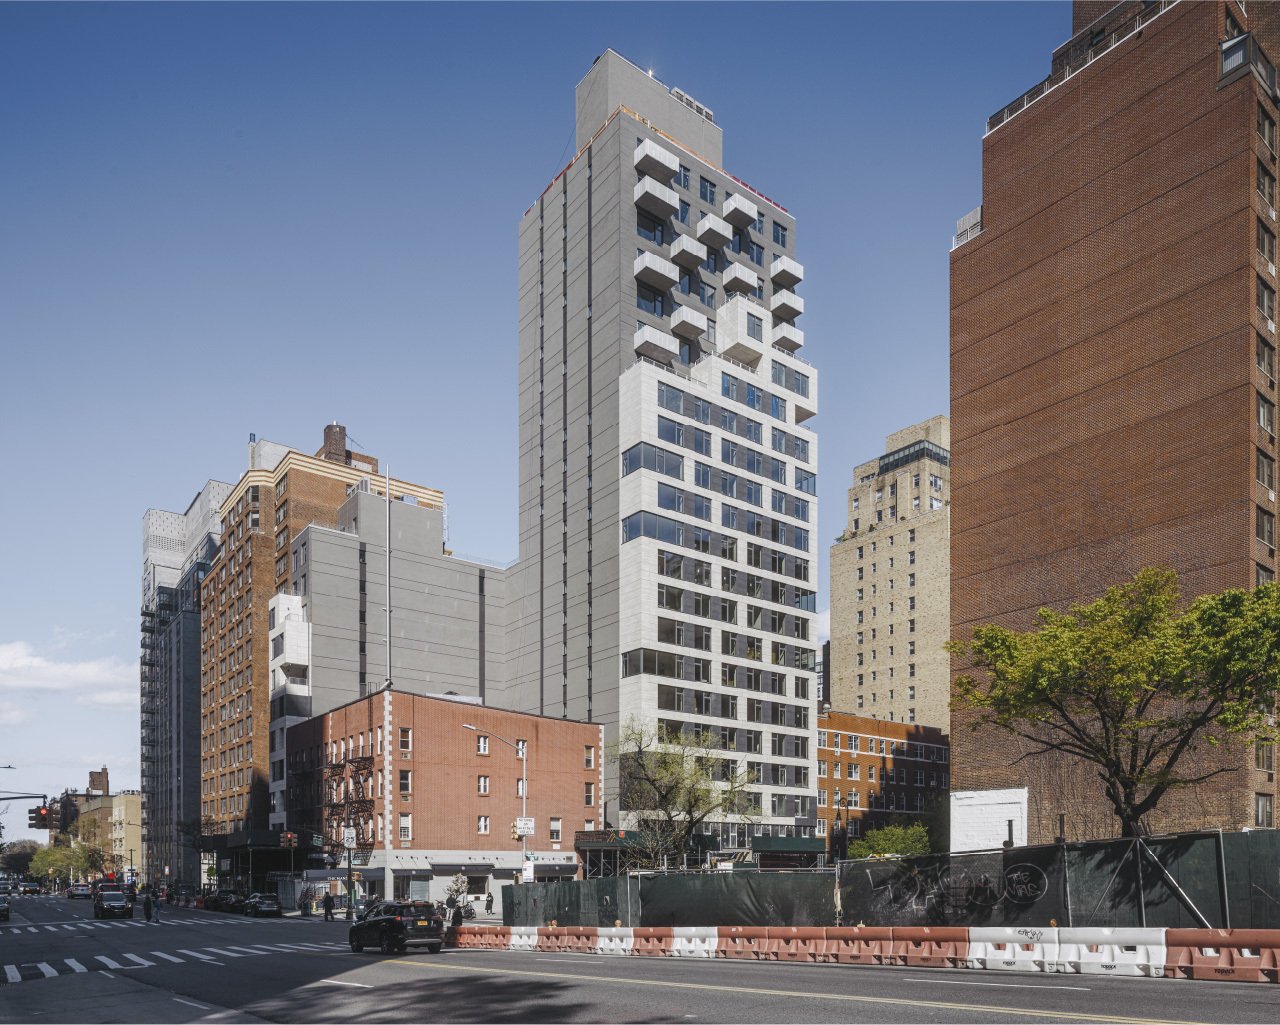 511 East 86 Street Tower with large format porcelain panel facade